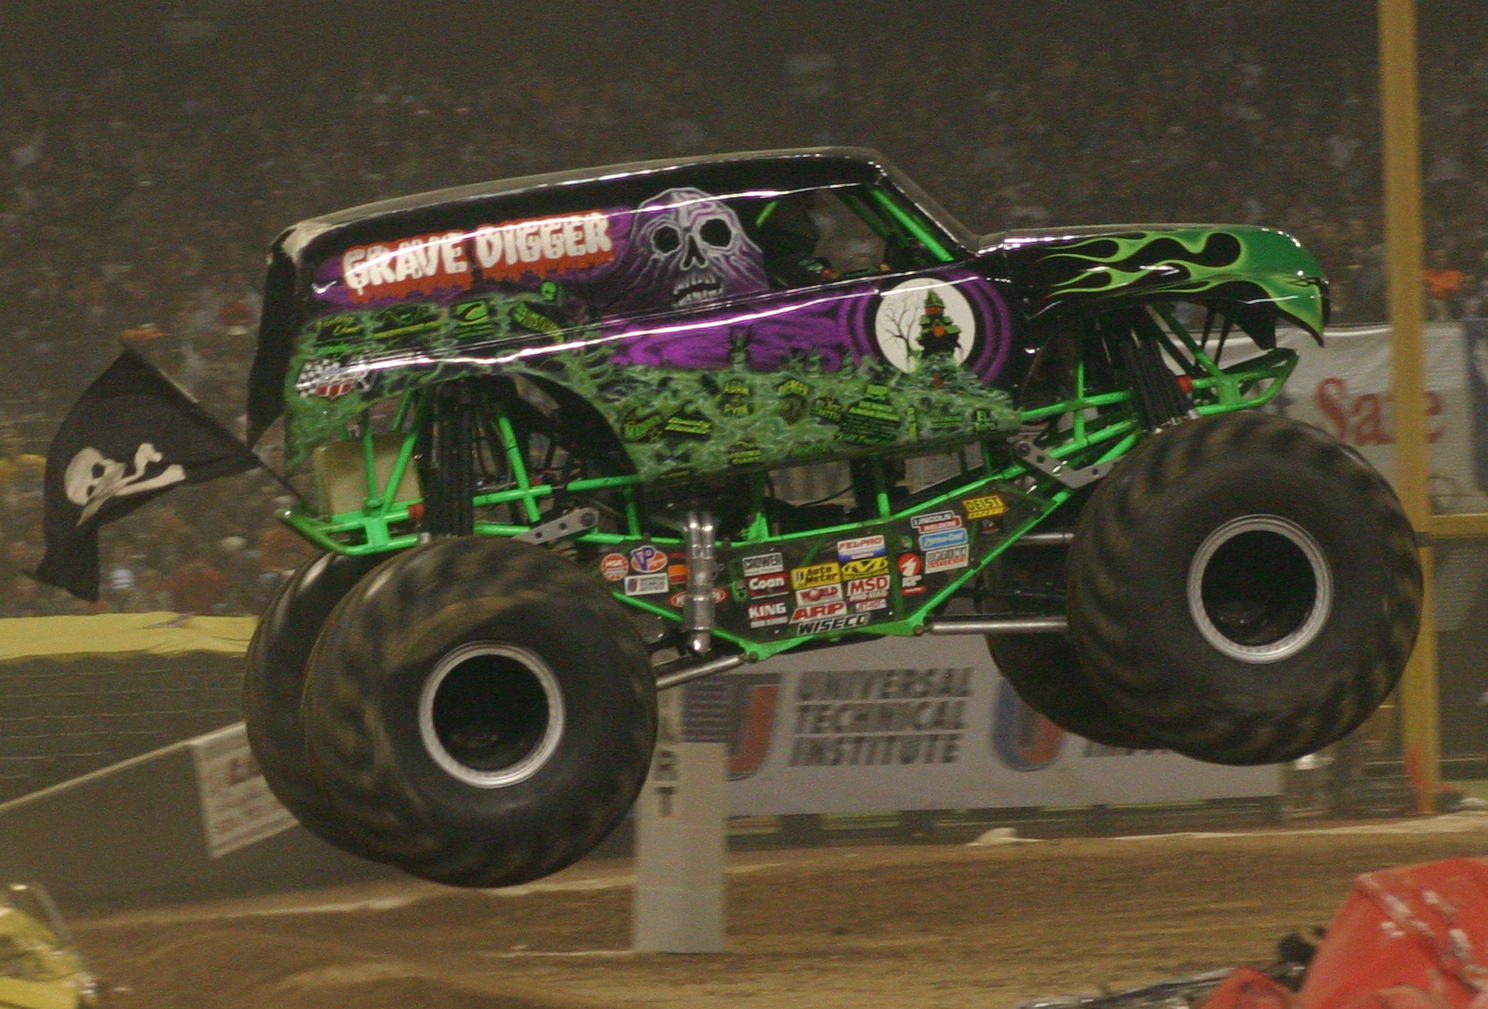 my grave digger monster truck build builds and project cars forum. Black Bedroom Furniture Sets. Home Design Ideas